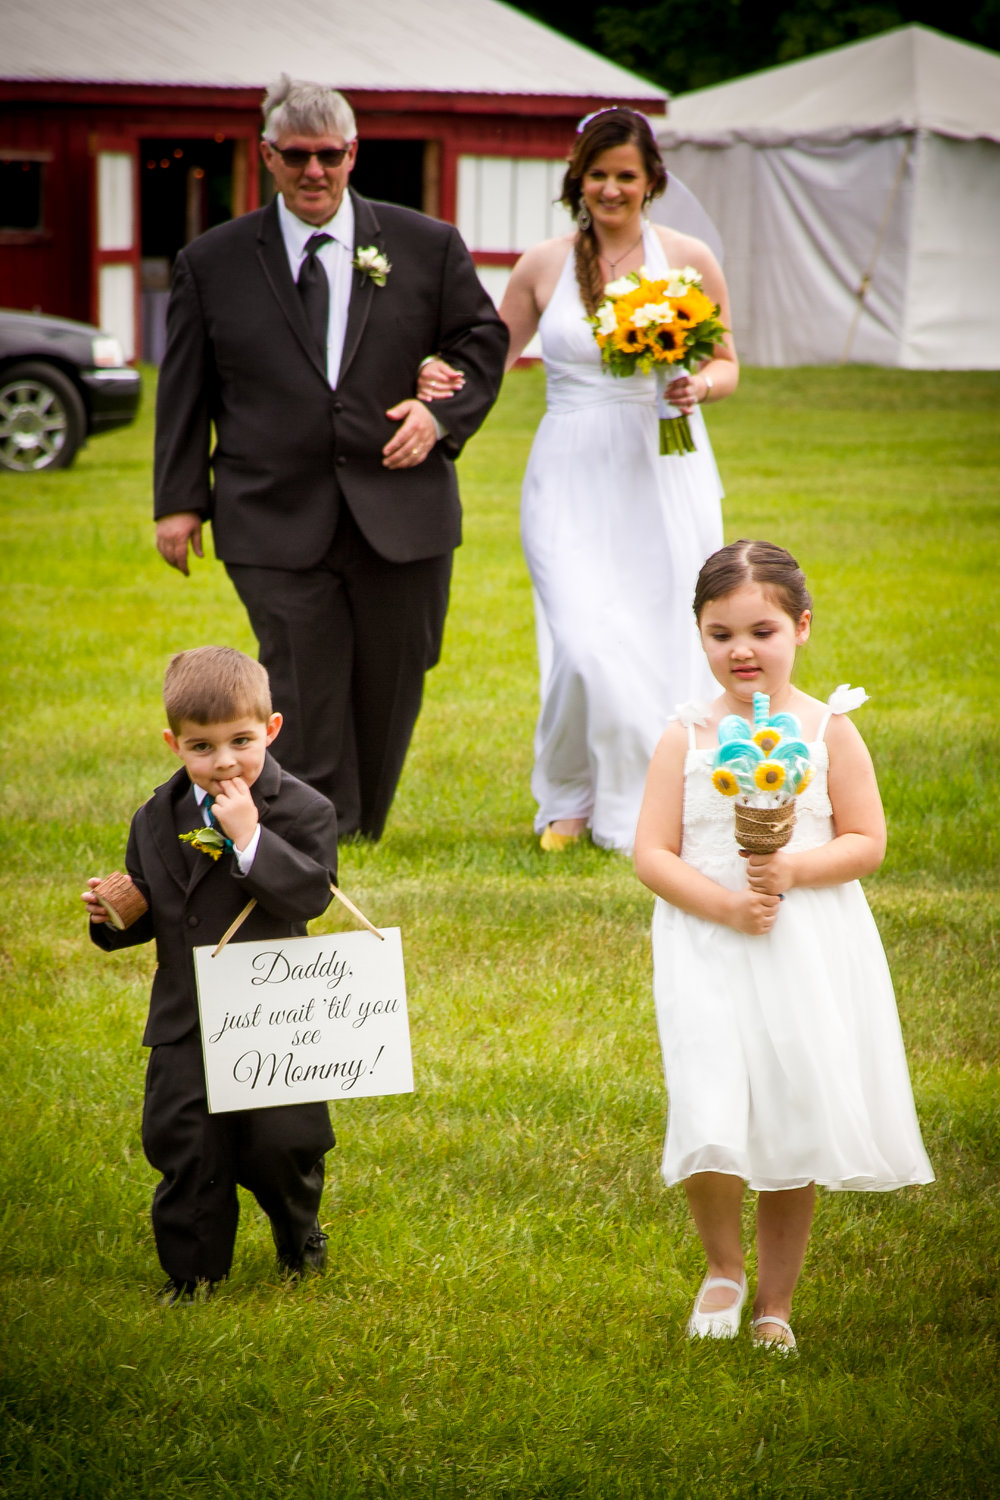 The smiling Bride makes her escorted entrance, as the flower girl and ring bearer lead the way.